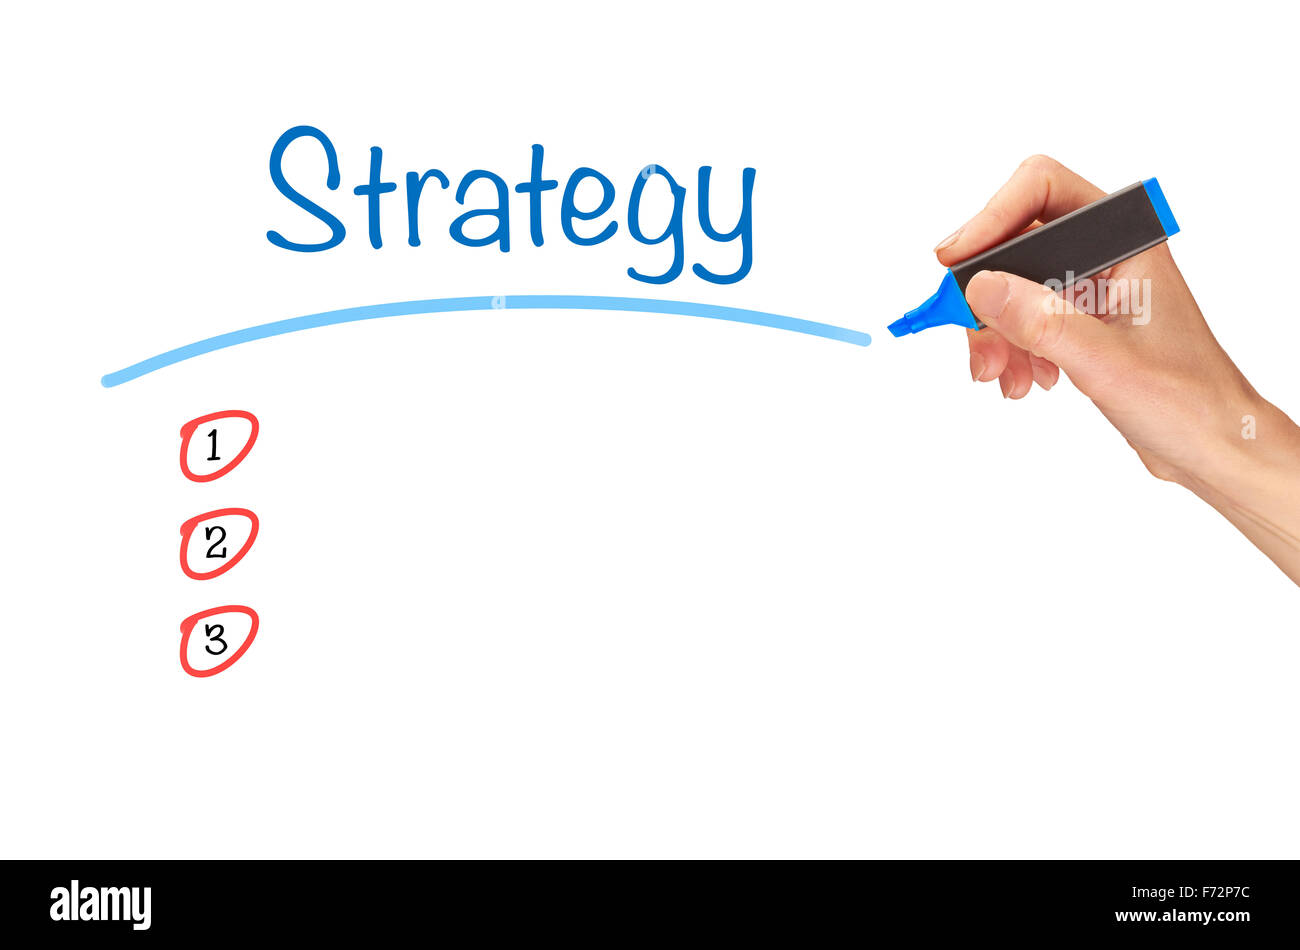 Strategy, written in marker on a clear screen. - Stock Image